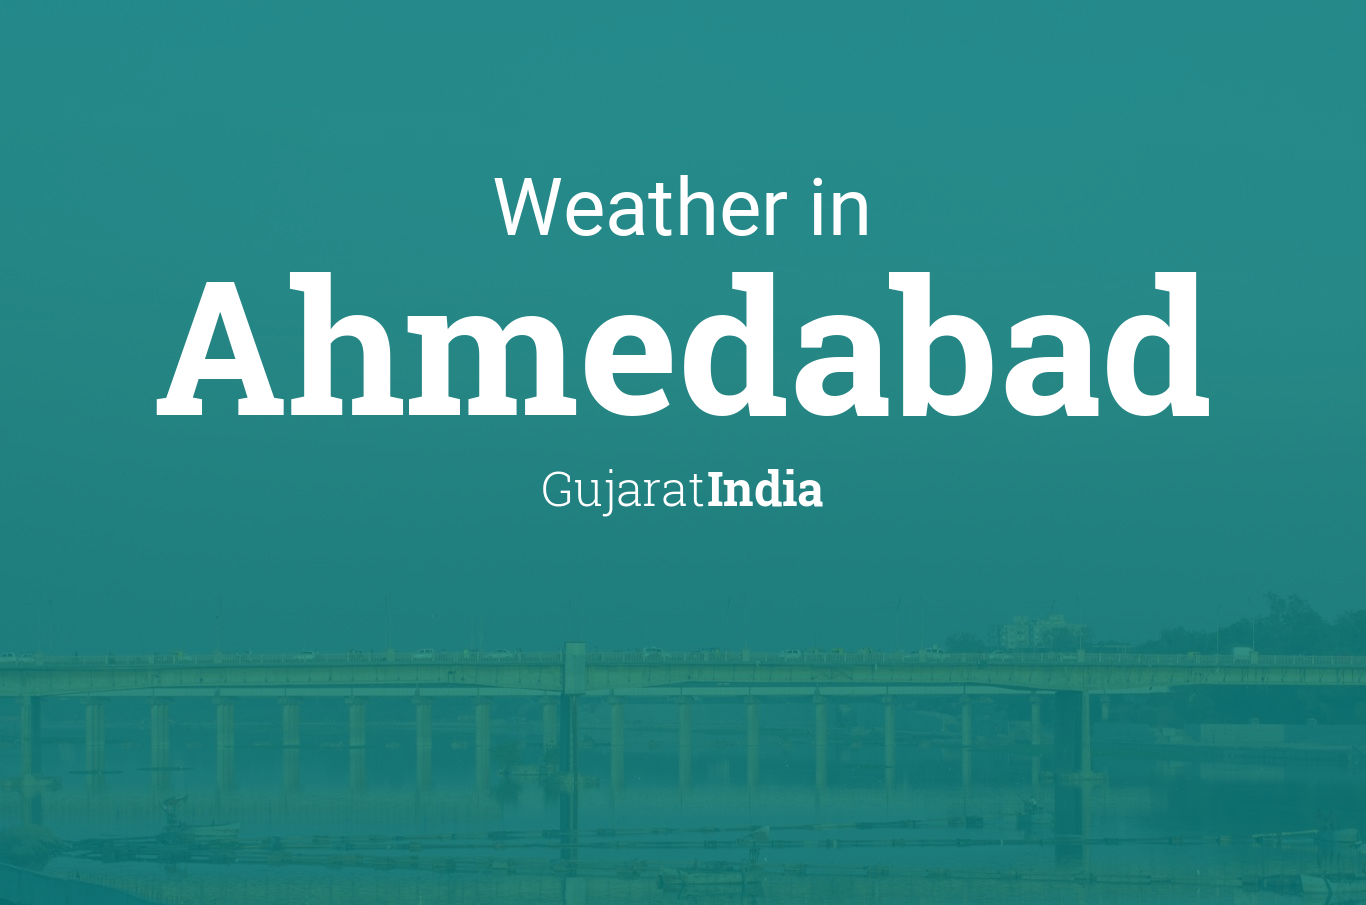 Weather for Ahmedabad, Gujarat, India